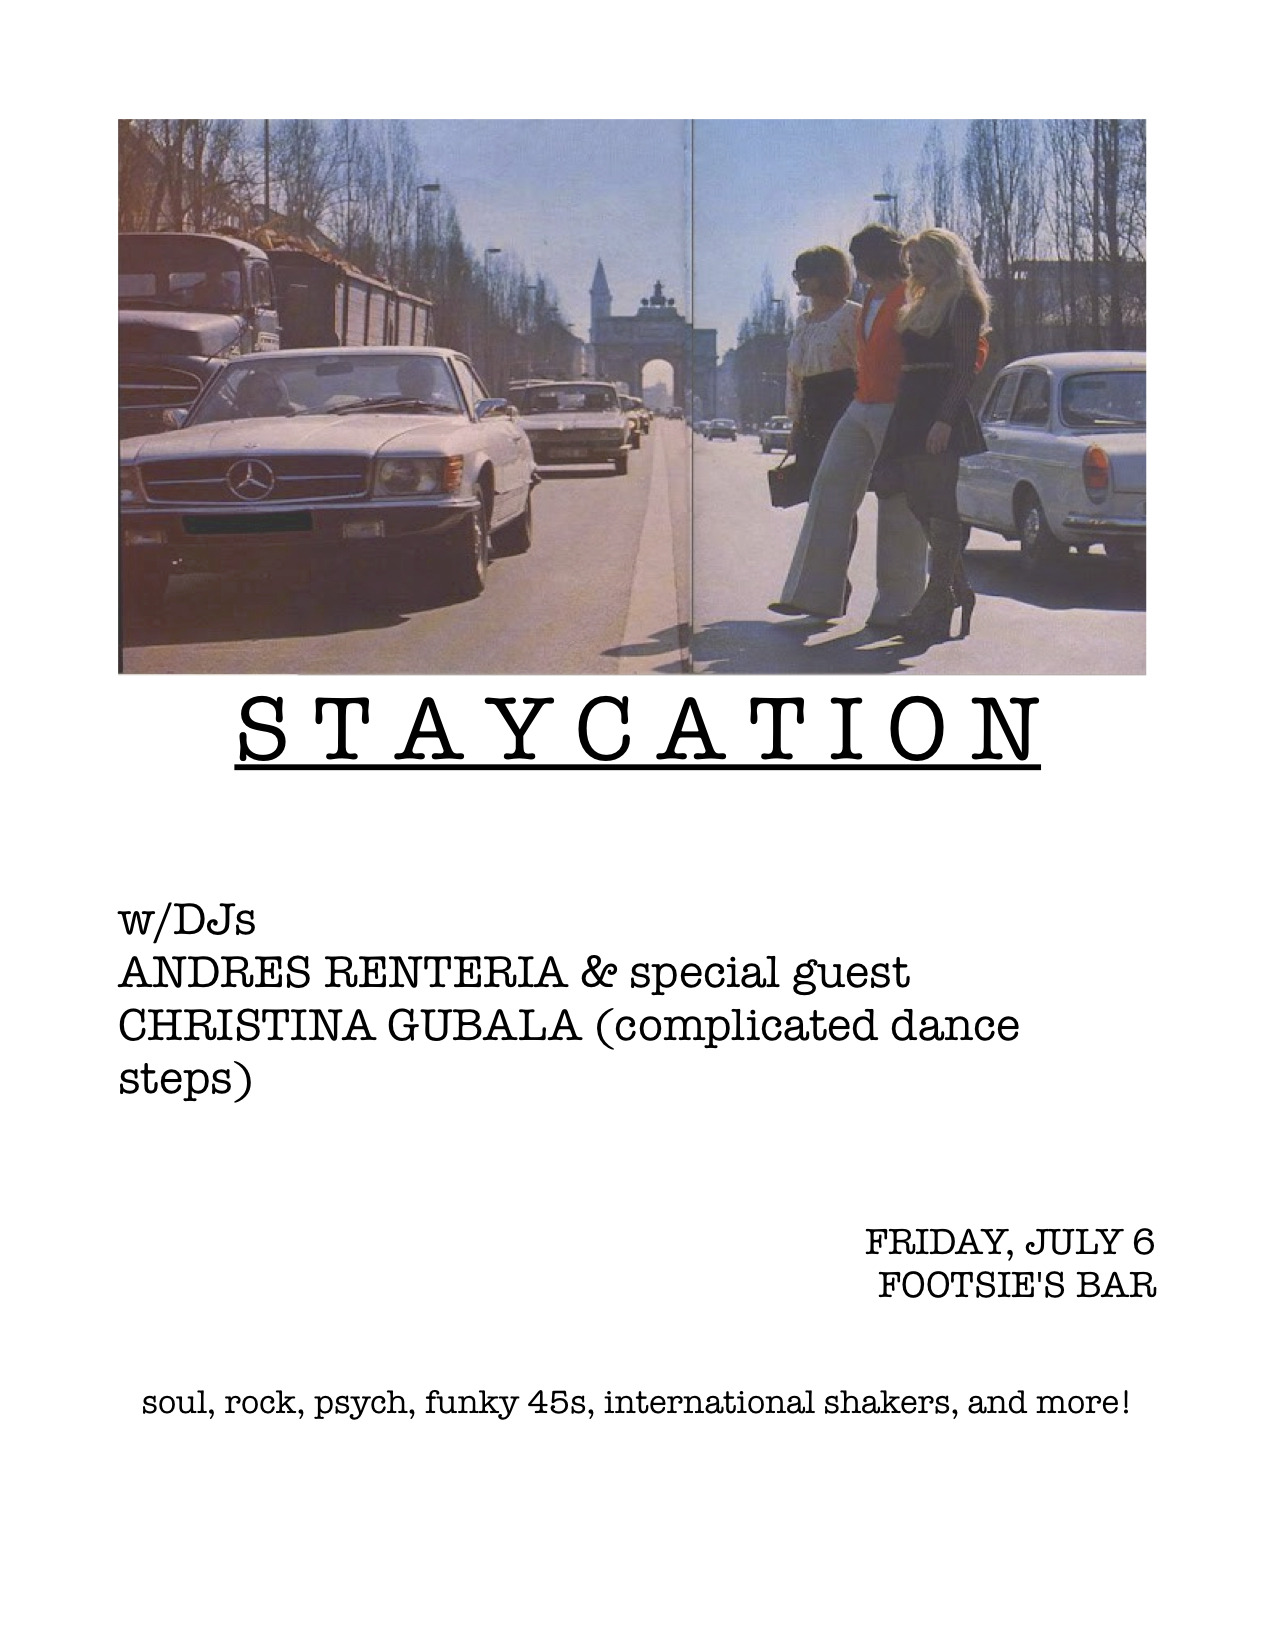 STAYCATION….every Friday from 10pm-2am at Footsie's Bar 2640 N. Figueroa St., Los Angeles, CA 90065 with resident DJ Andres Renteria and special guests.  This week we have Christina Gubala from Complicated Dance Steps.